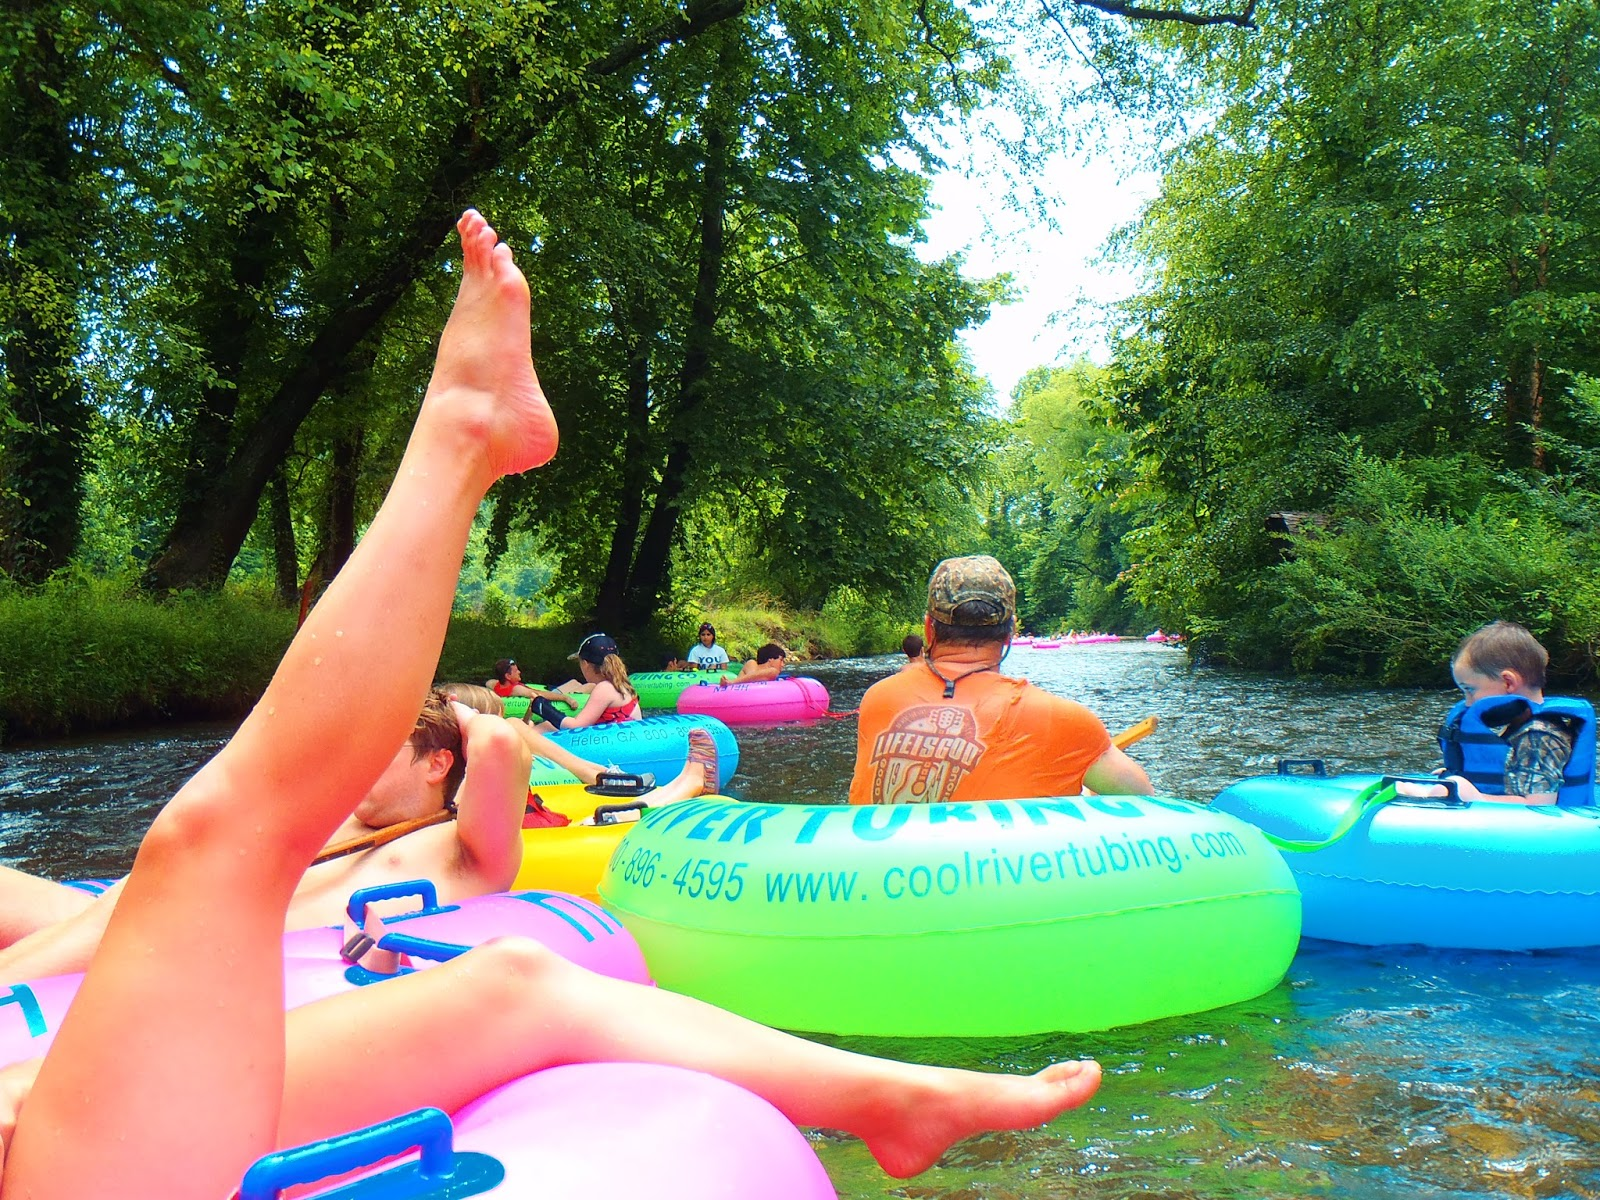 Tubing down river Helen Georgia